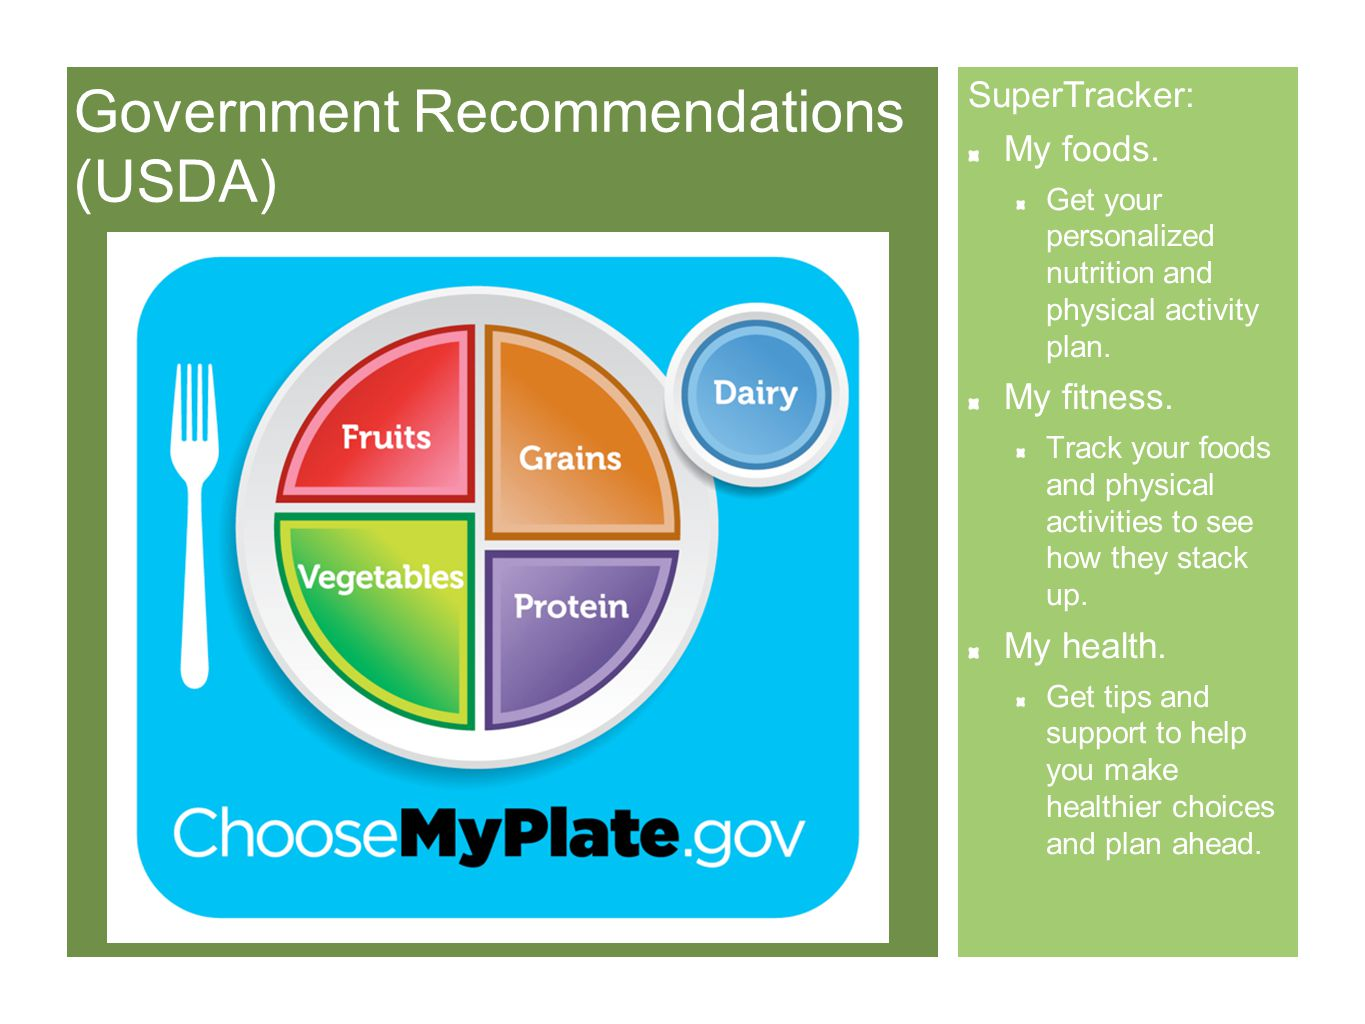 Government Recommendations (USDA) SuperTracker: My foods.